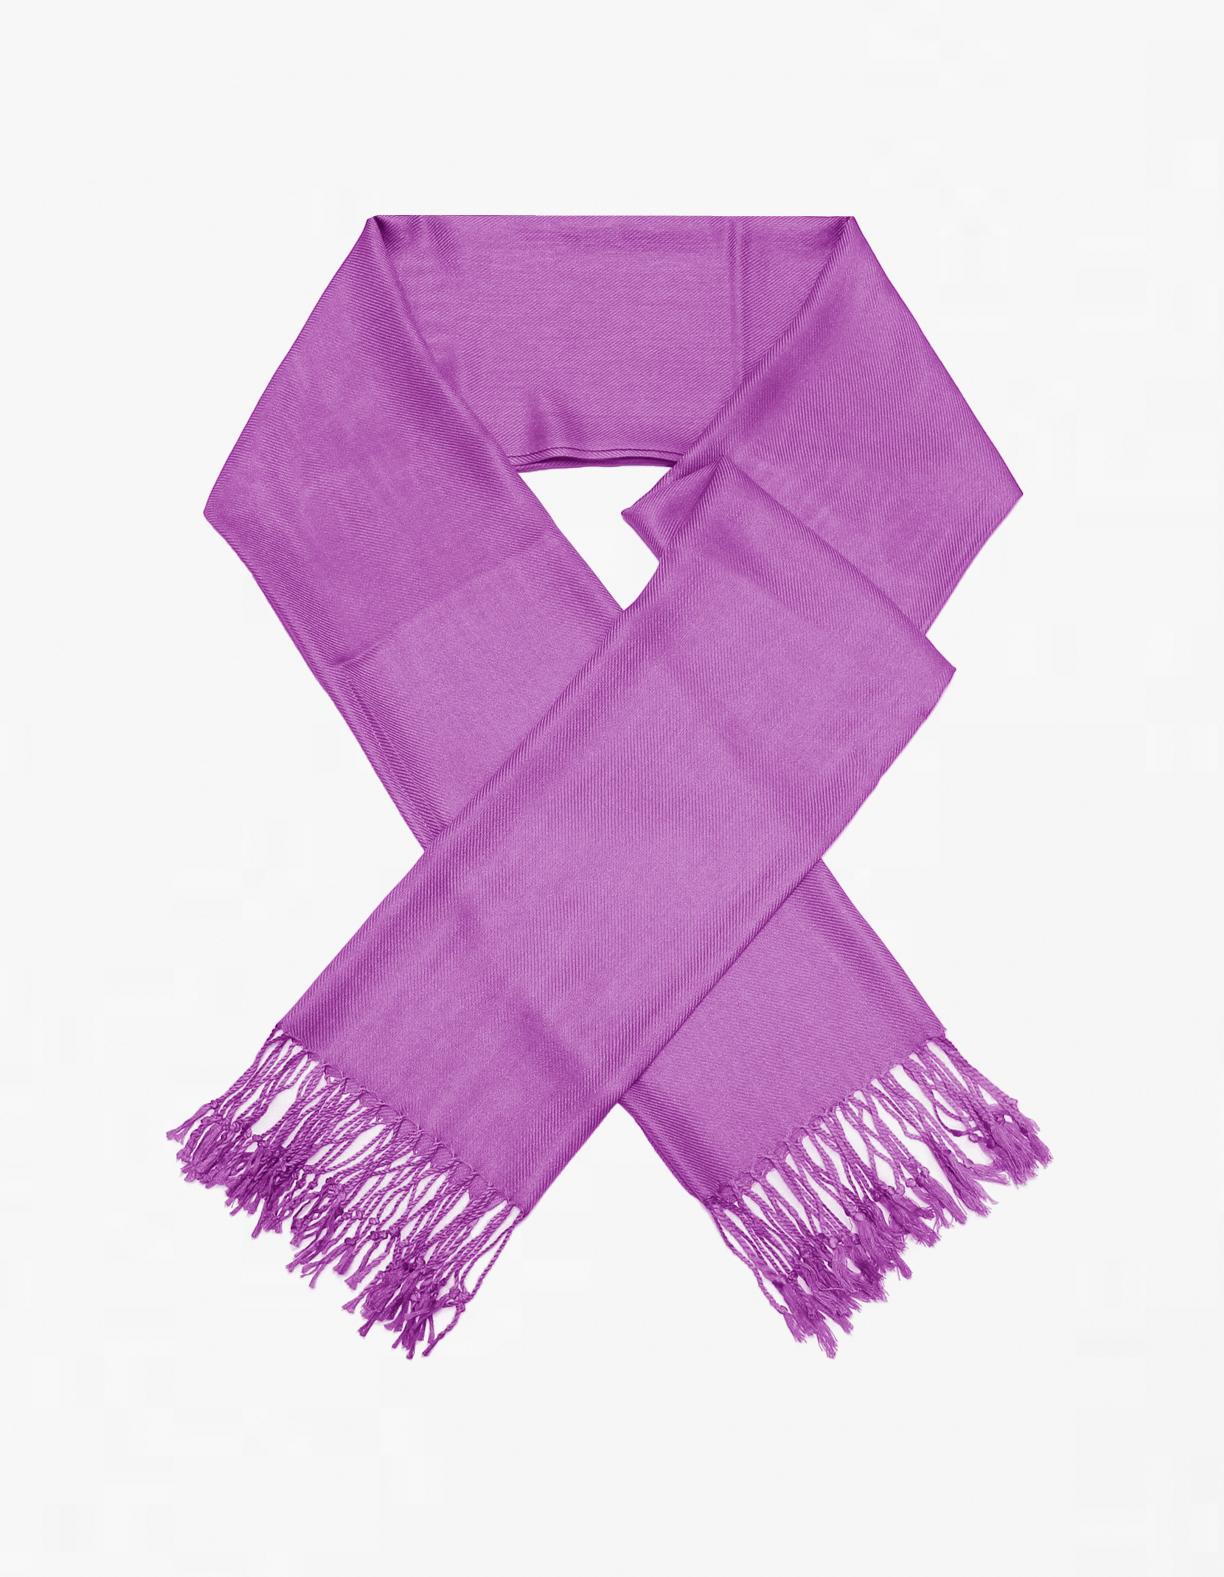 8145 Dark Orchid Pashmina Scarf